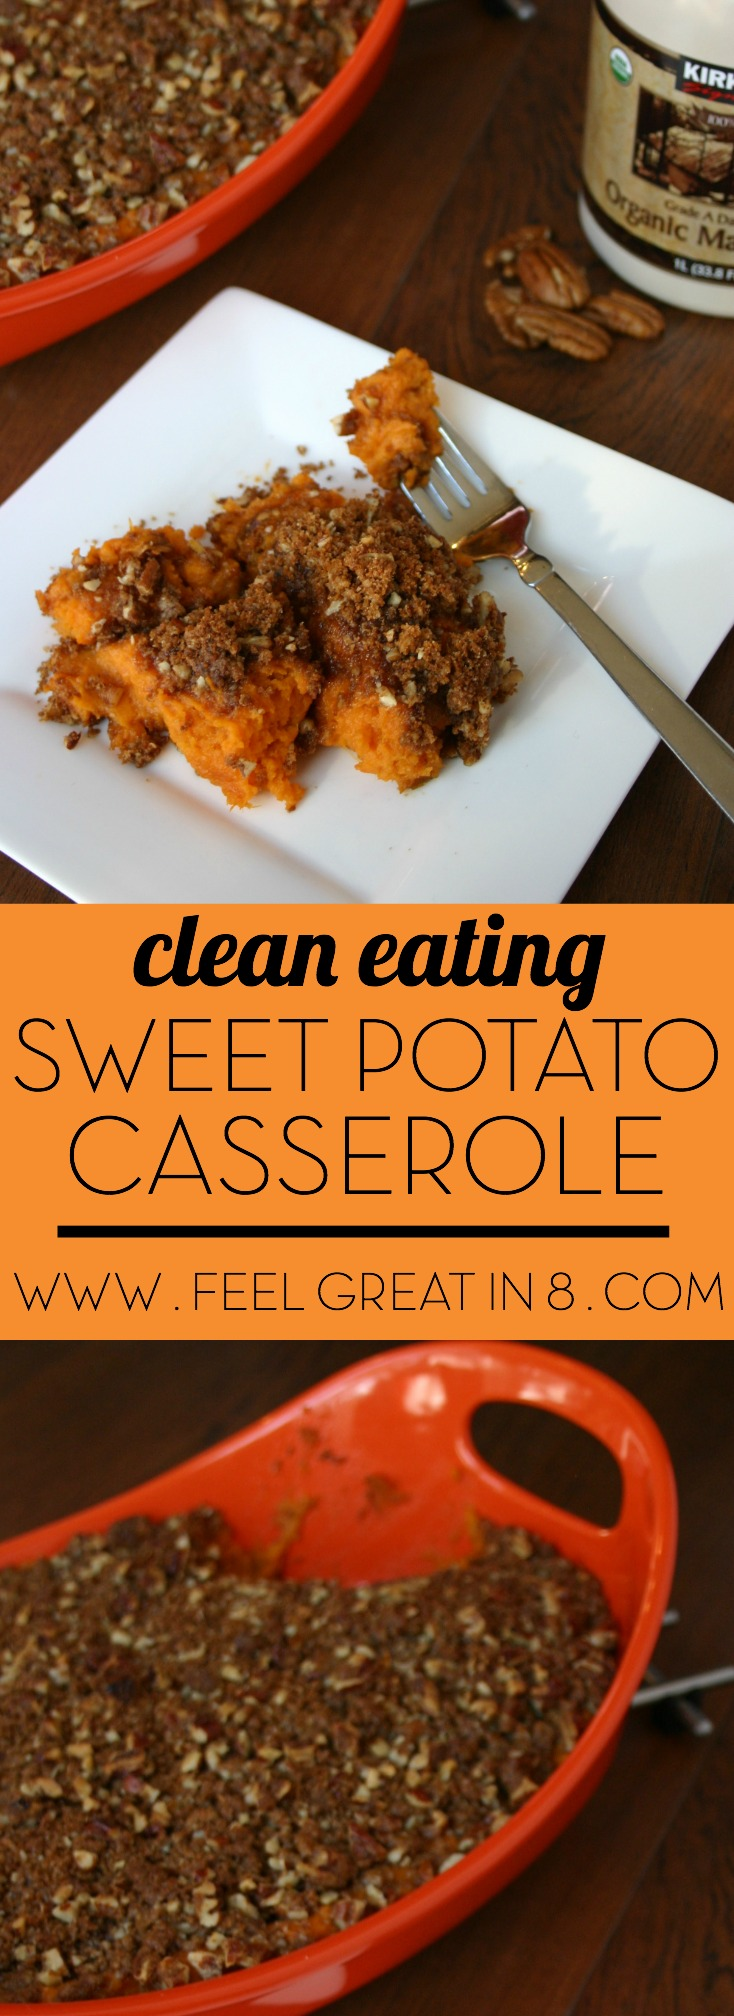 Sweet Potato Casserole - This healthy clean eating side dish is the perfect addition to your Thanksgiving dinner. Just as delicious, but with fewer calories and only real food ingredients. | Feel Great in 8